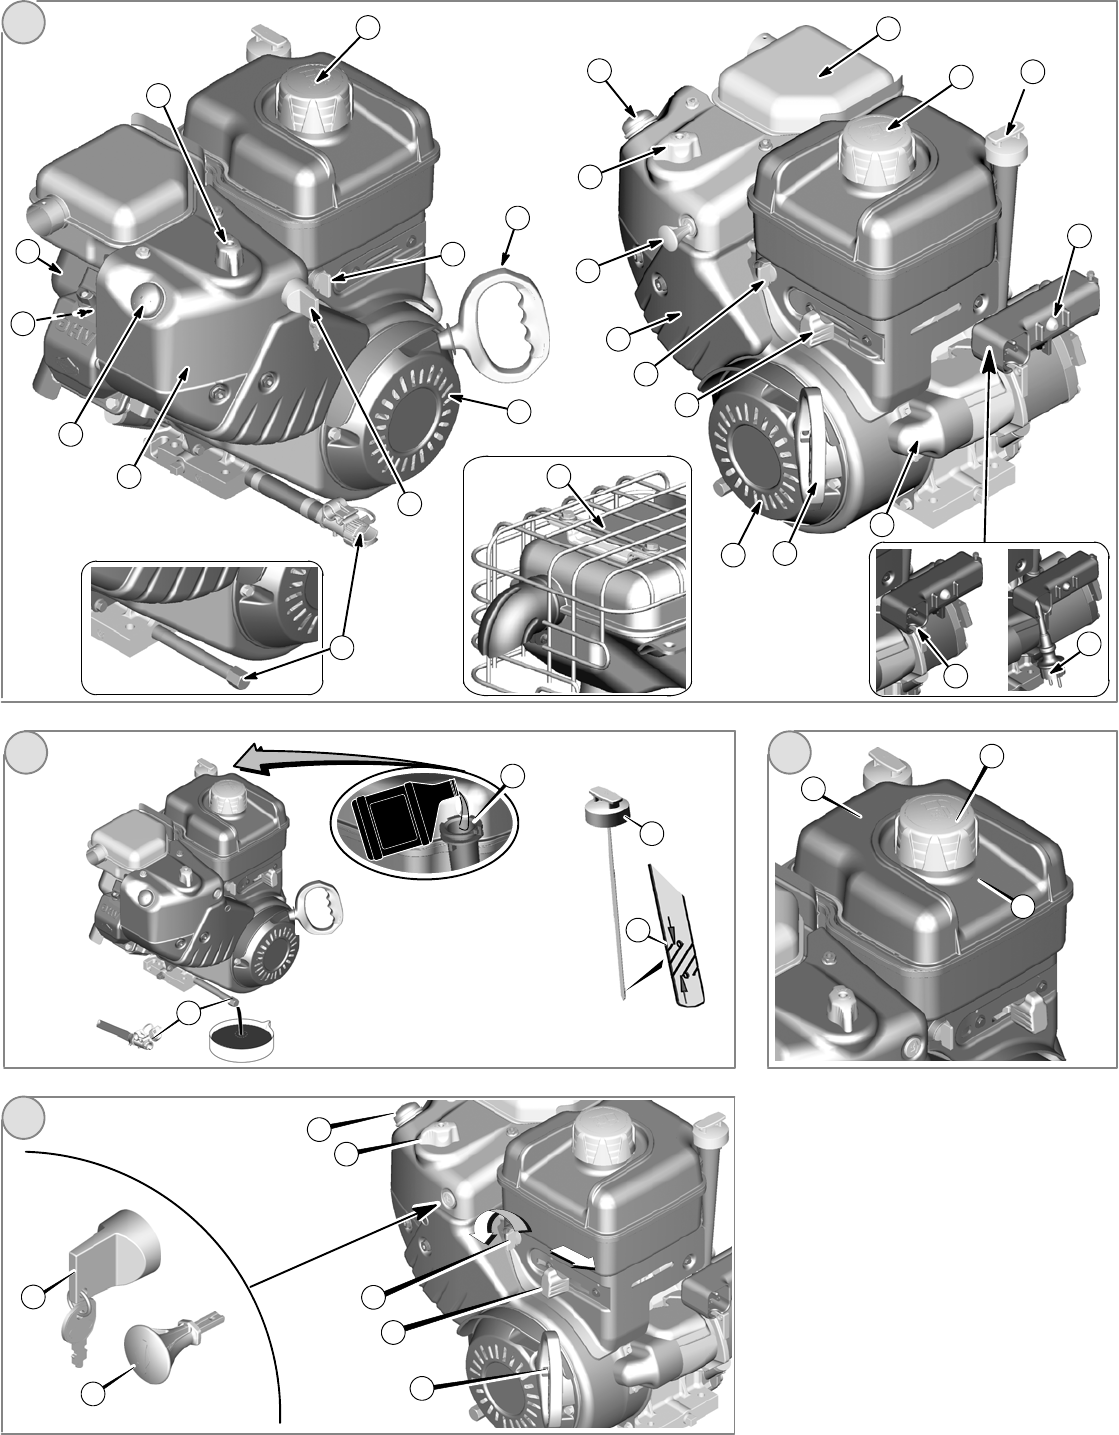 Page 2 of Briggs & Stratton Snow Blower 120000 User Guide